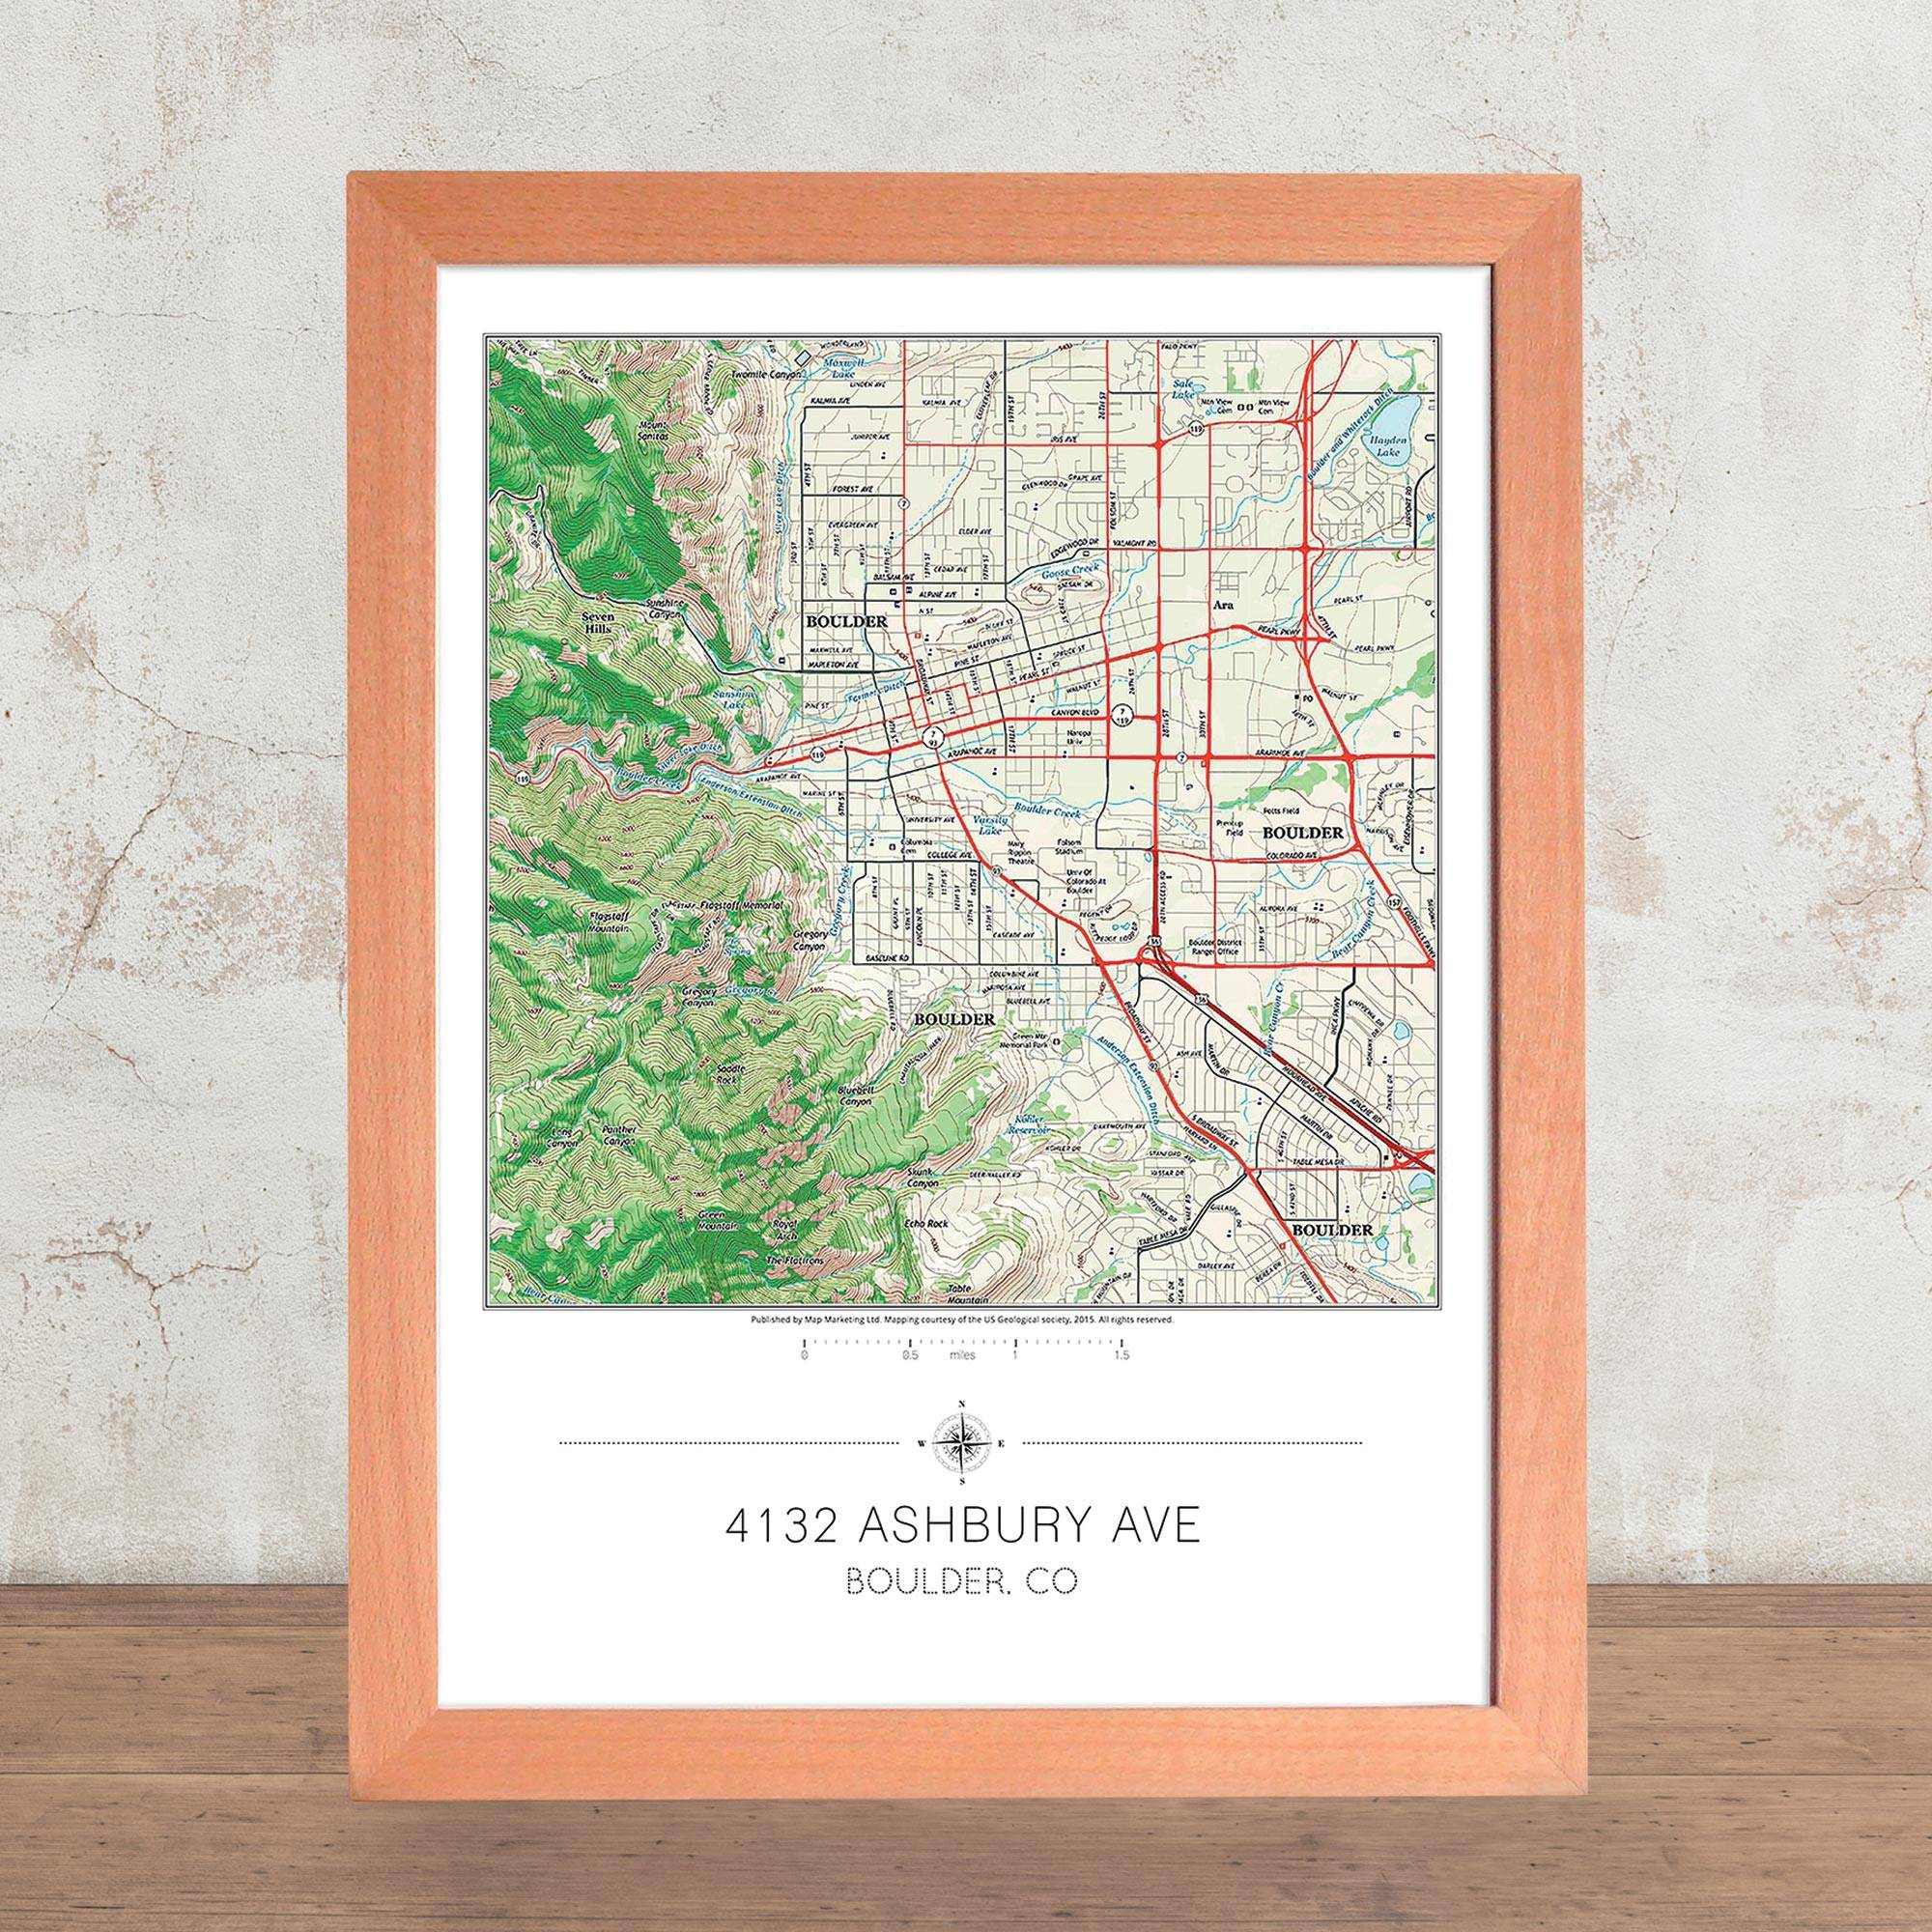 Framed 'Your Home' USGS Topographical Map